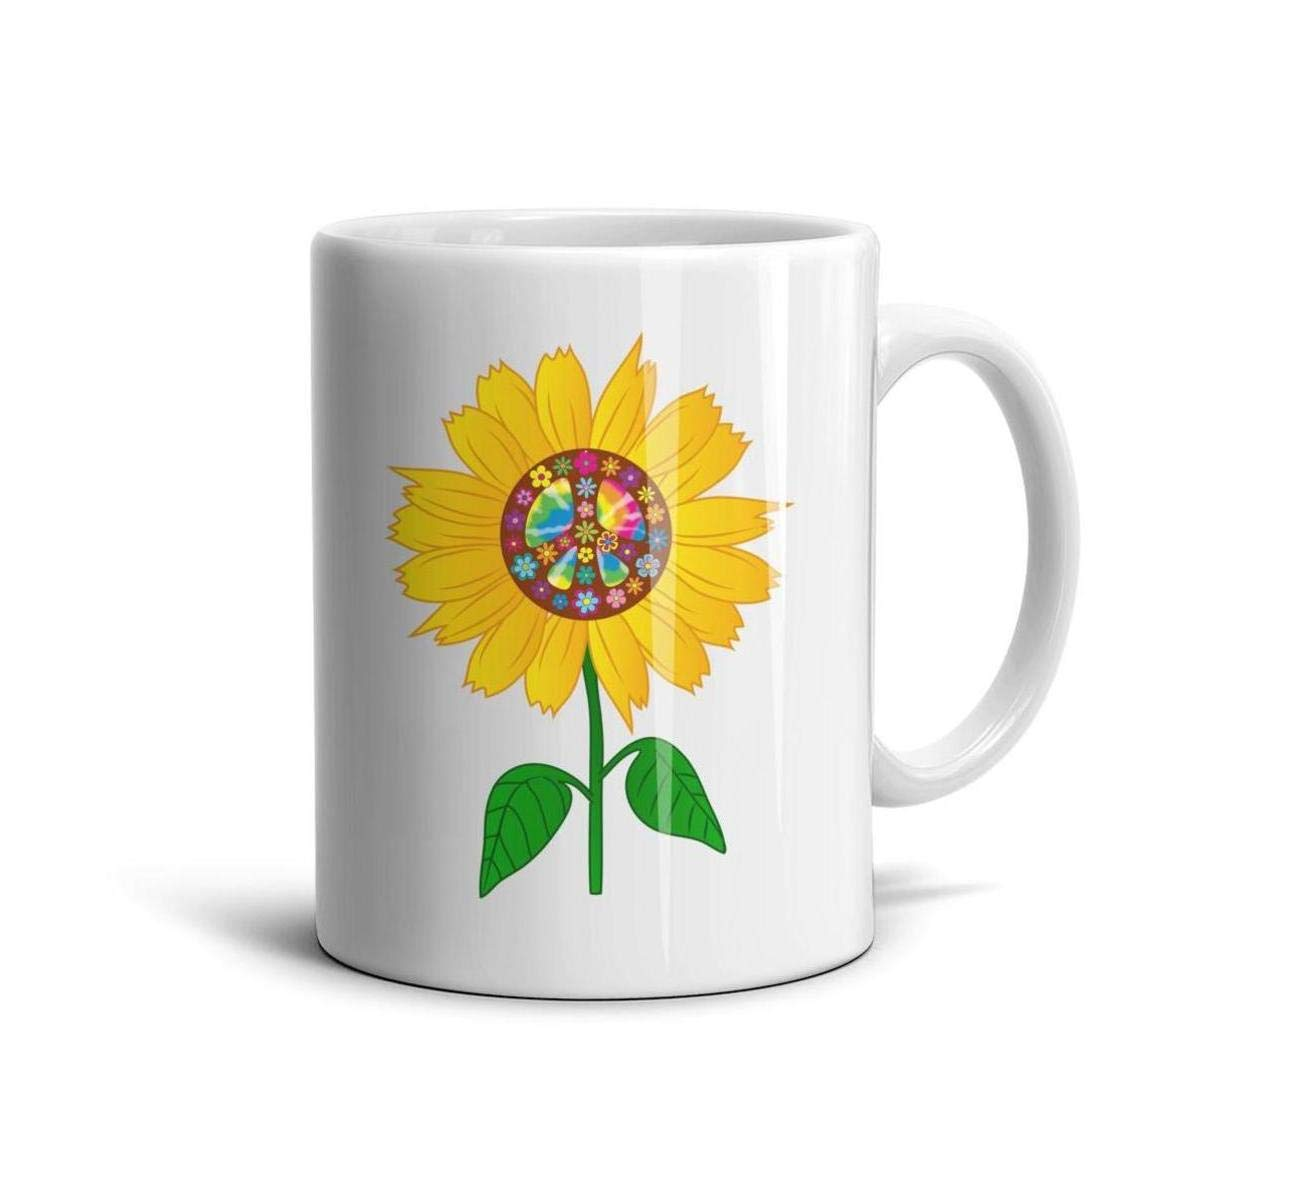 devrrssx Sunflower and Peace Sign Cool Coffee Mug Set Great Gift 1 Set for Office and Home for momMaximum Capacity 13.5oz